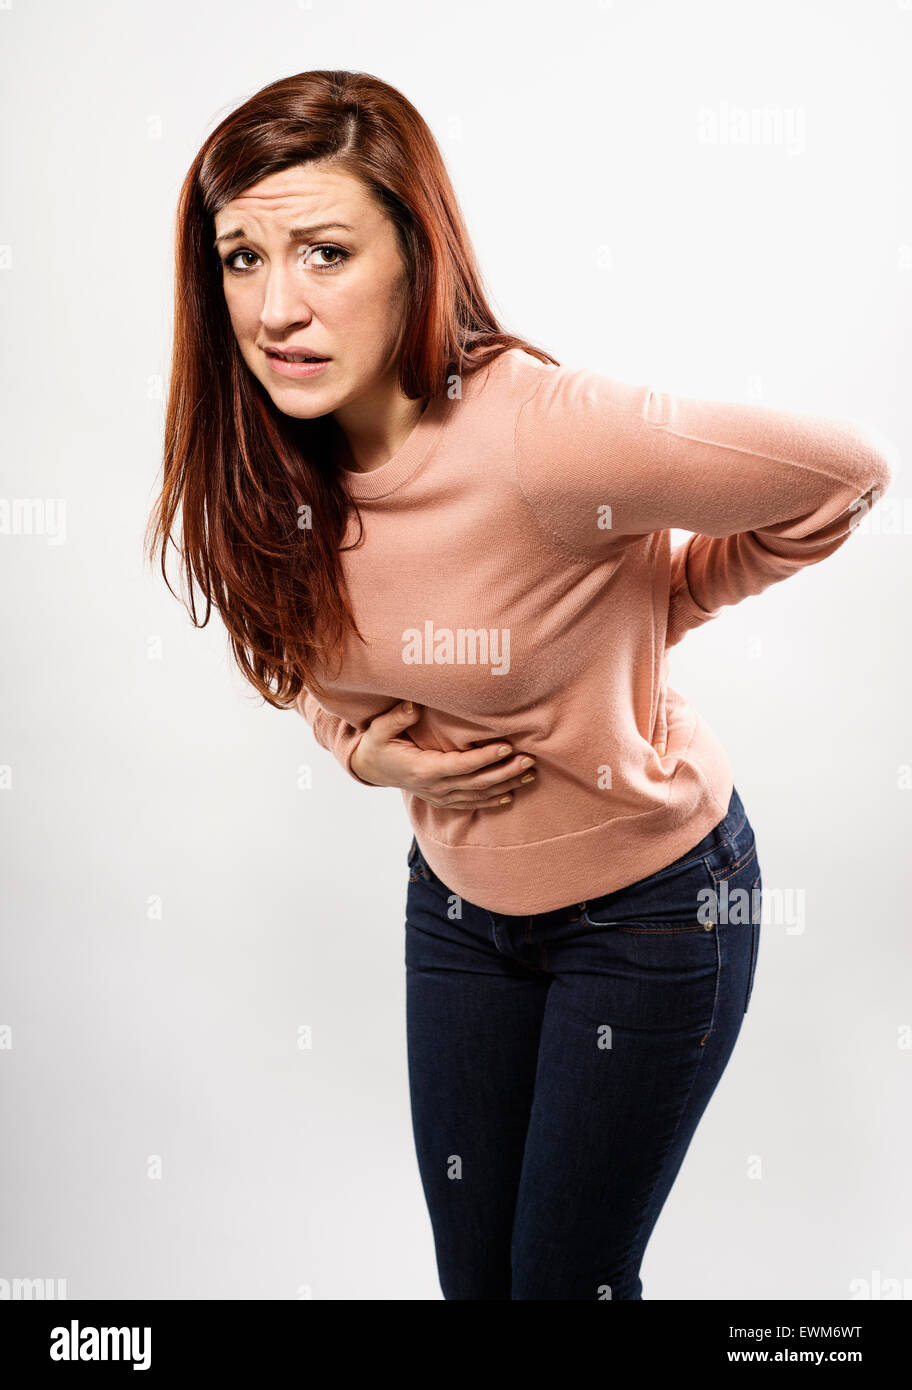 portrait of a woman with a stomach ache - Stock Image